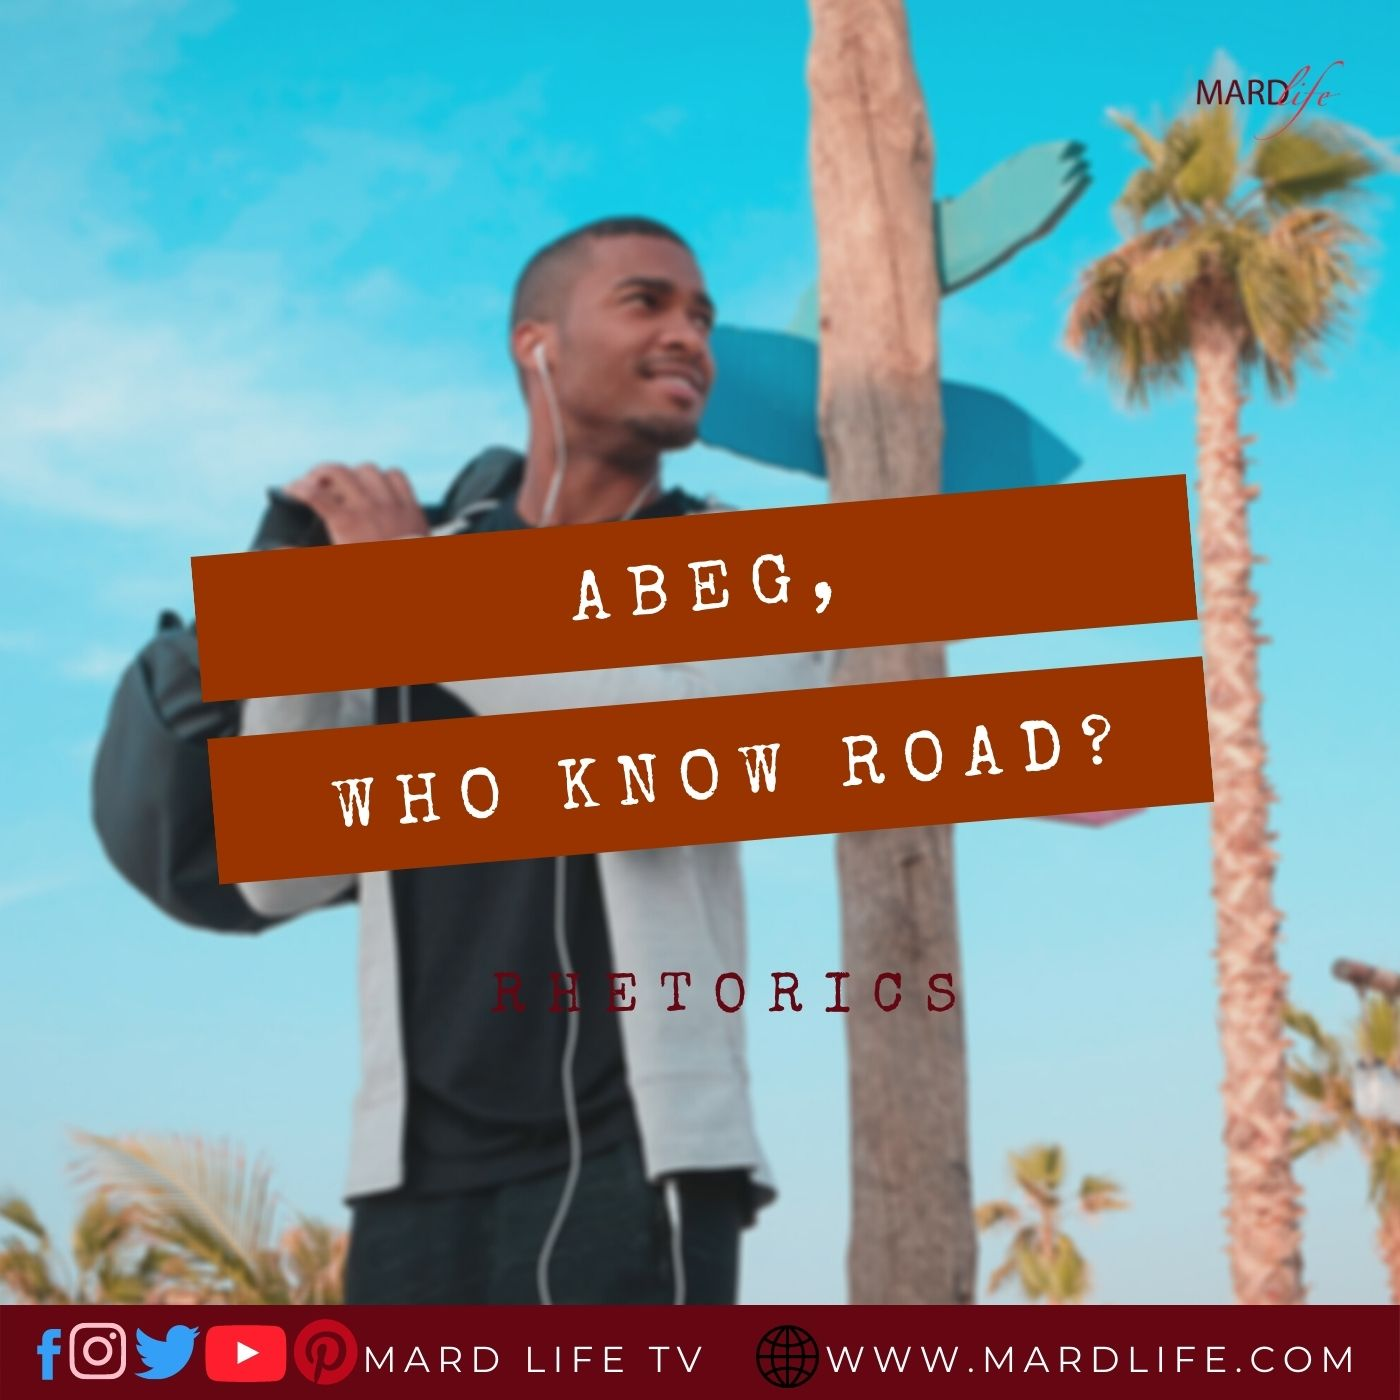 Abeg, Who Know Road?